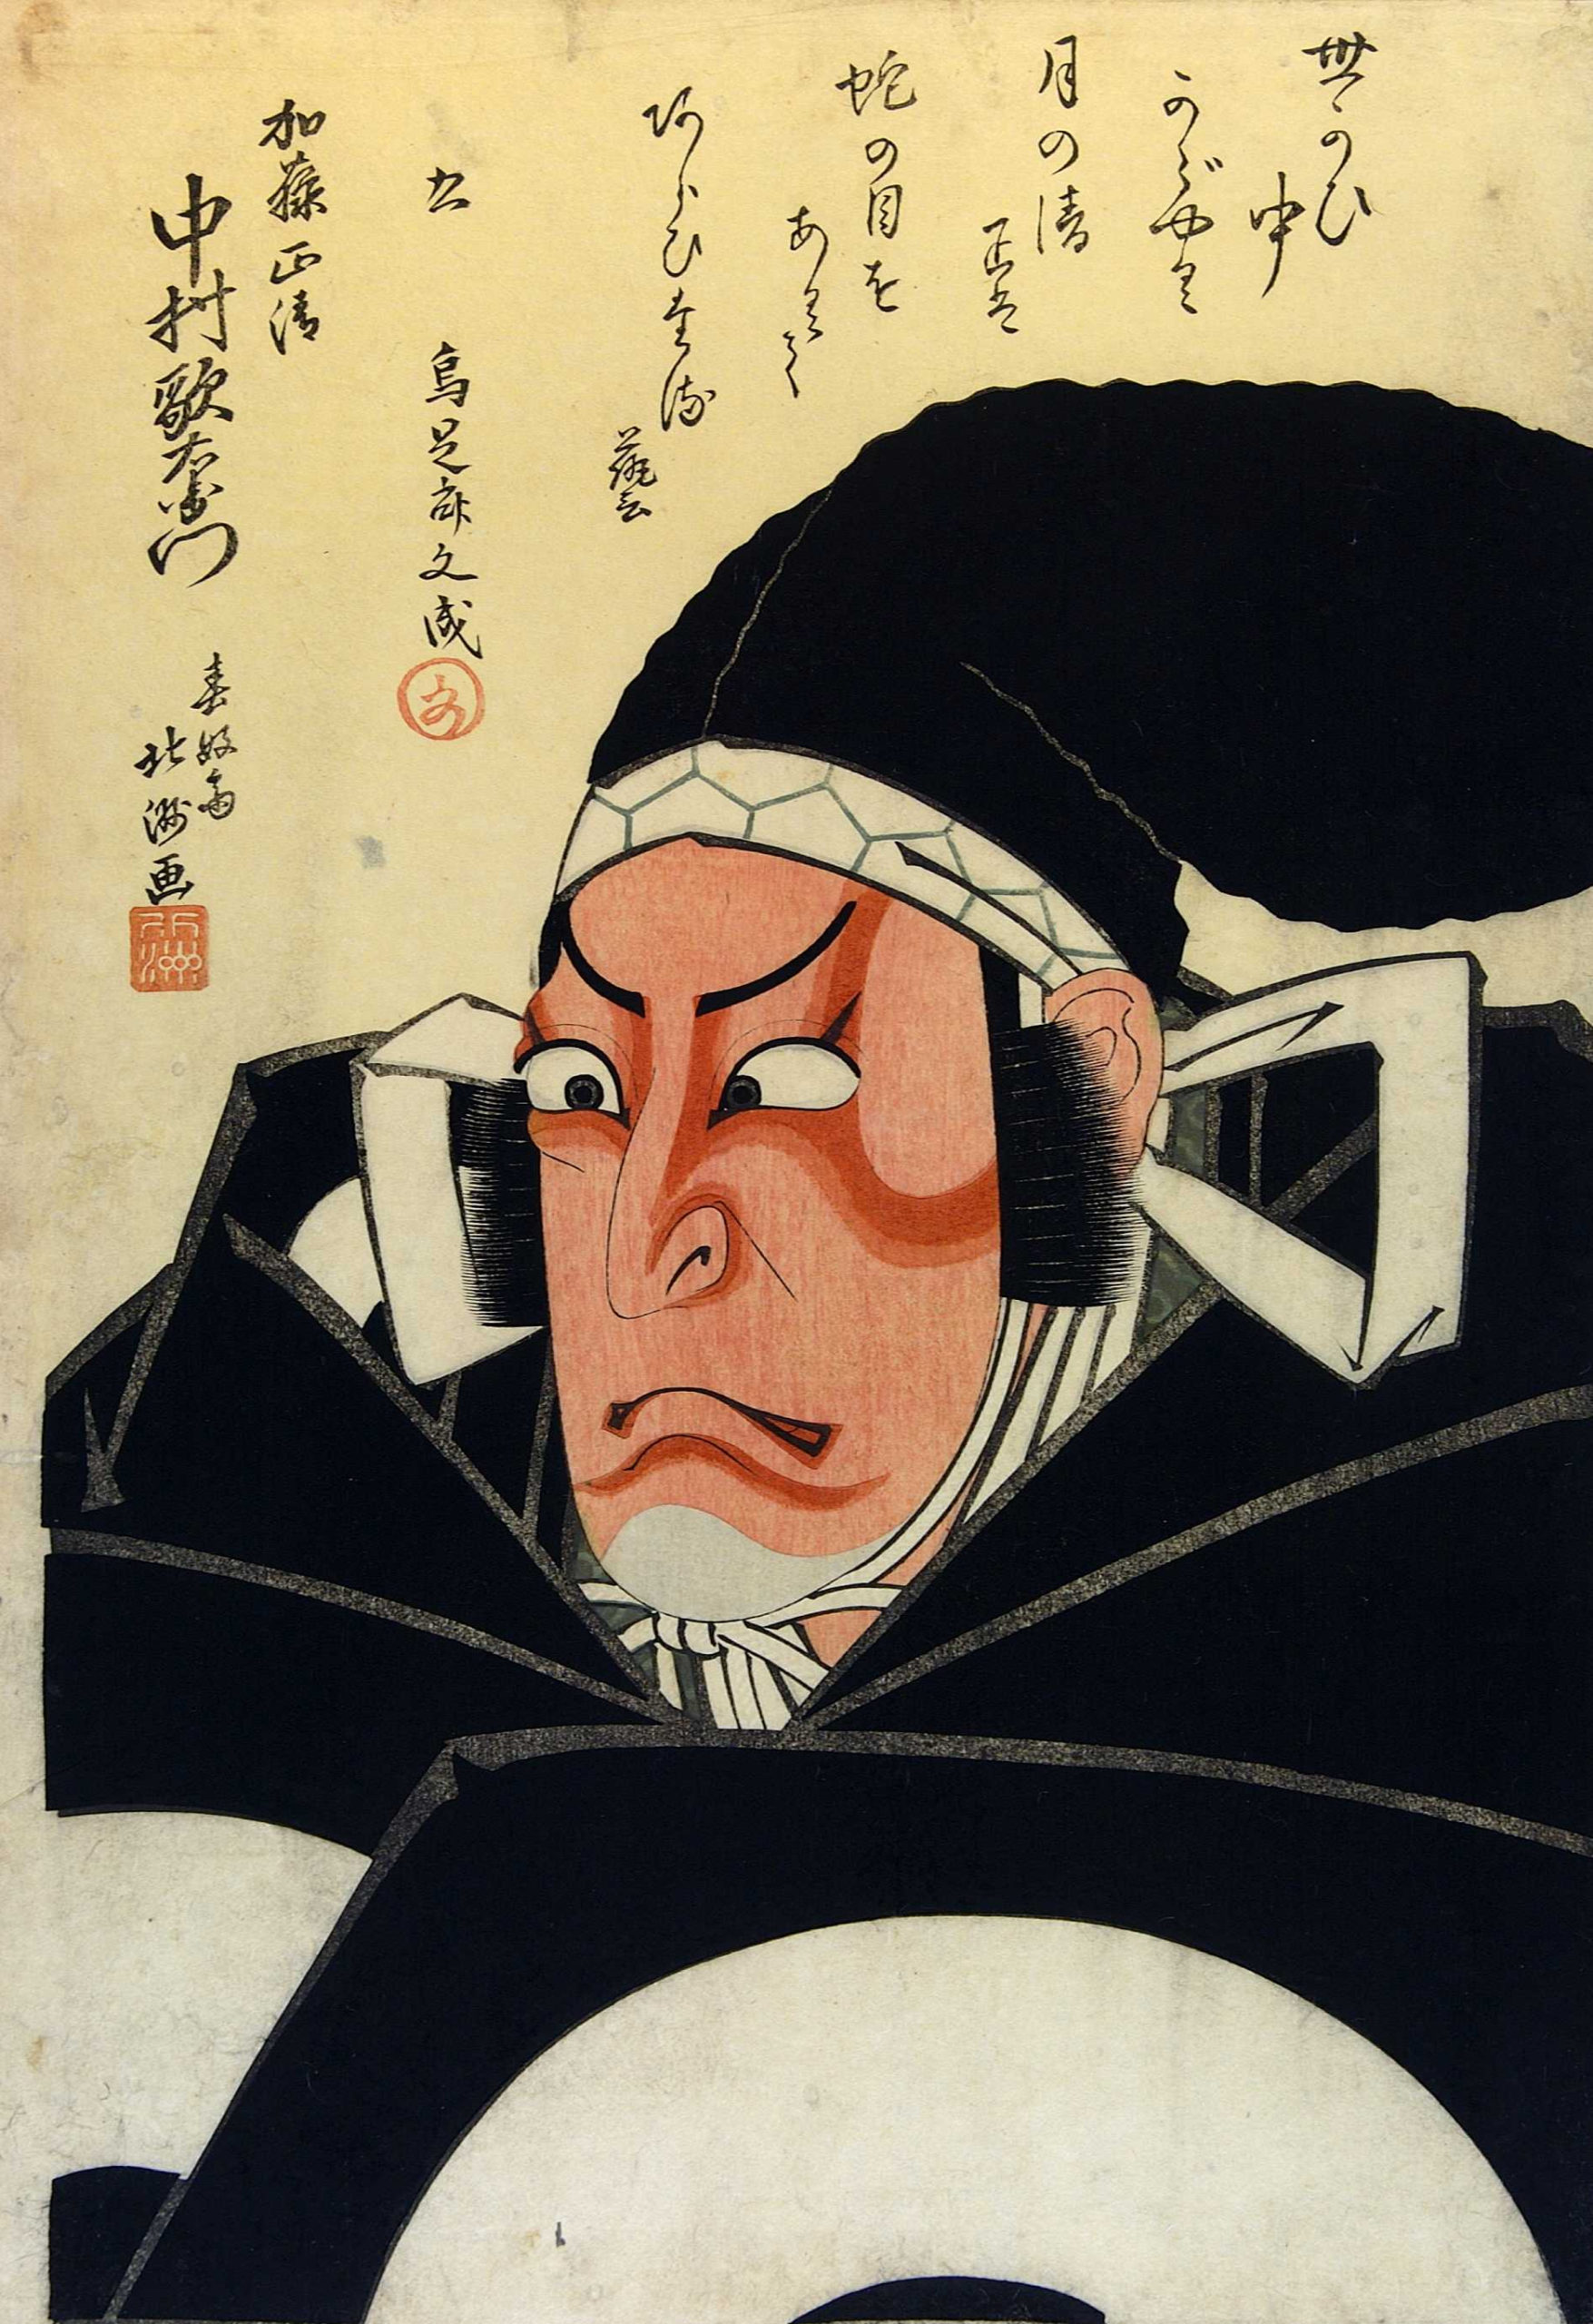 A colour woodblock print showing a bust portrait of the actor Nakamura Utaemon III with popping eyes.